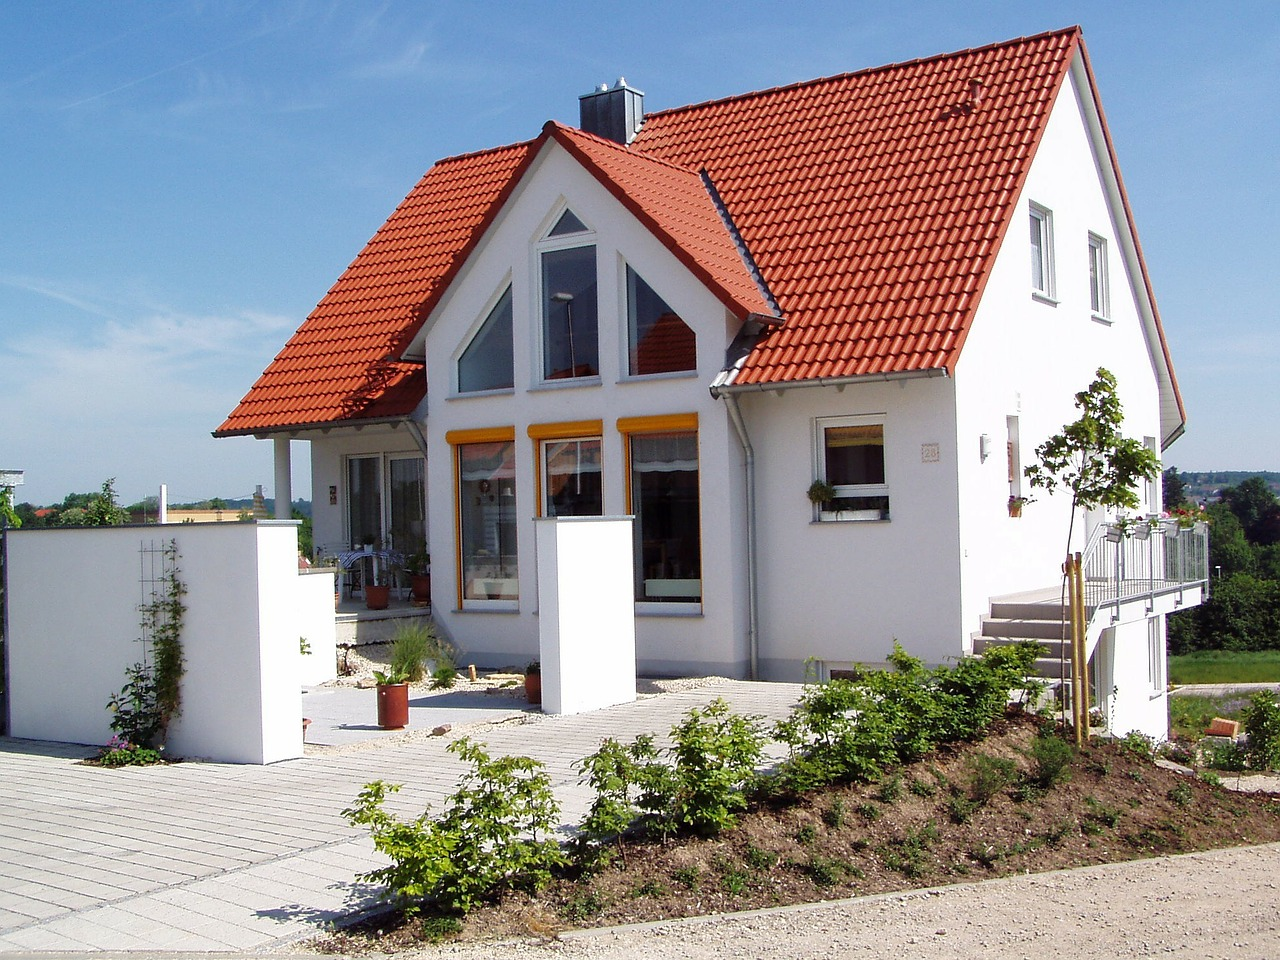 How to Evaluate a Roof When Buying a Home